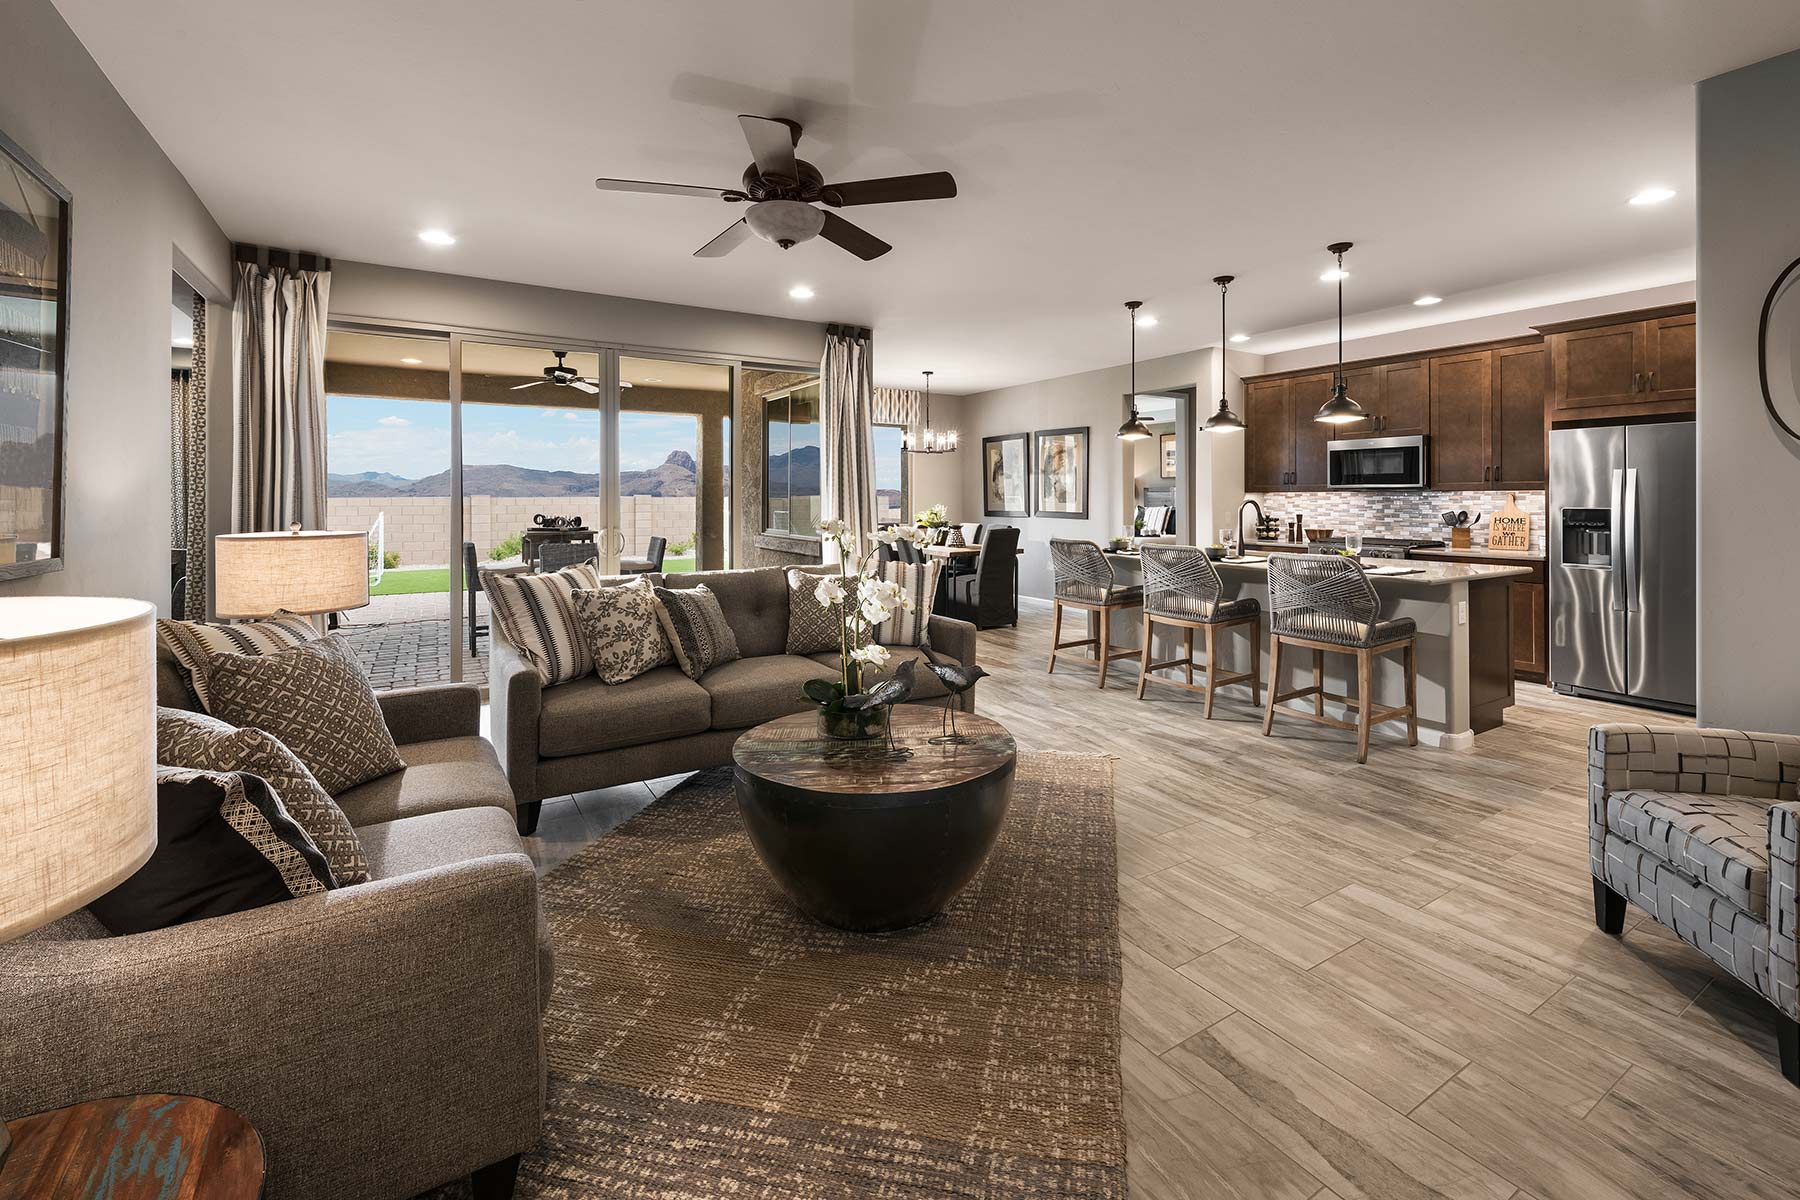 Agave Plan Greatroom at Desert Oasis at Twin Peaks in Marana Arizona by Mattamy Homes